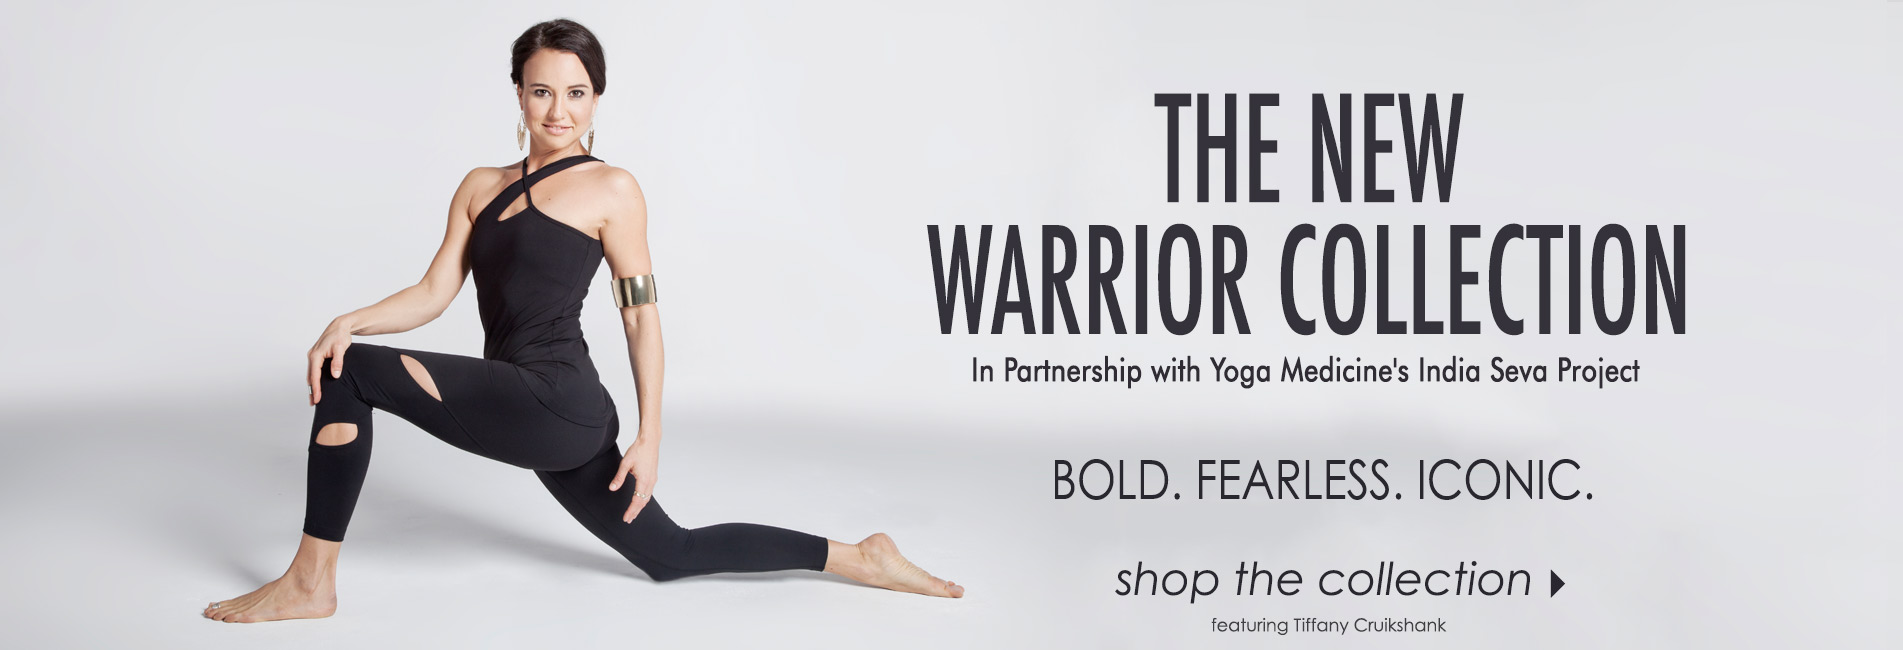 The KiraGrace New Warrior Collection